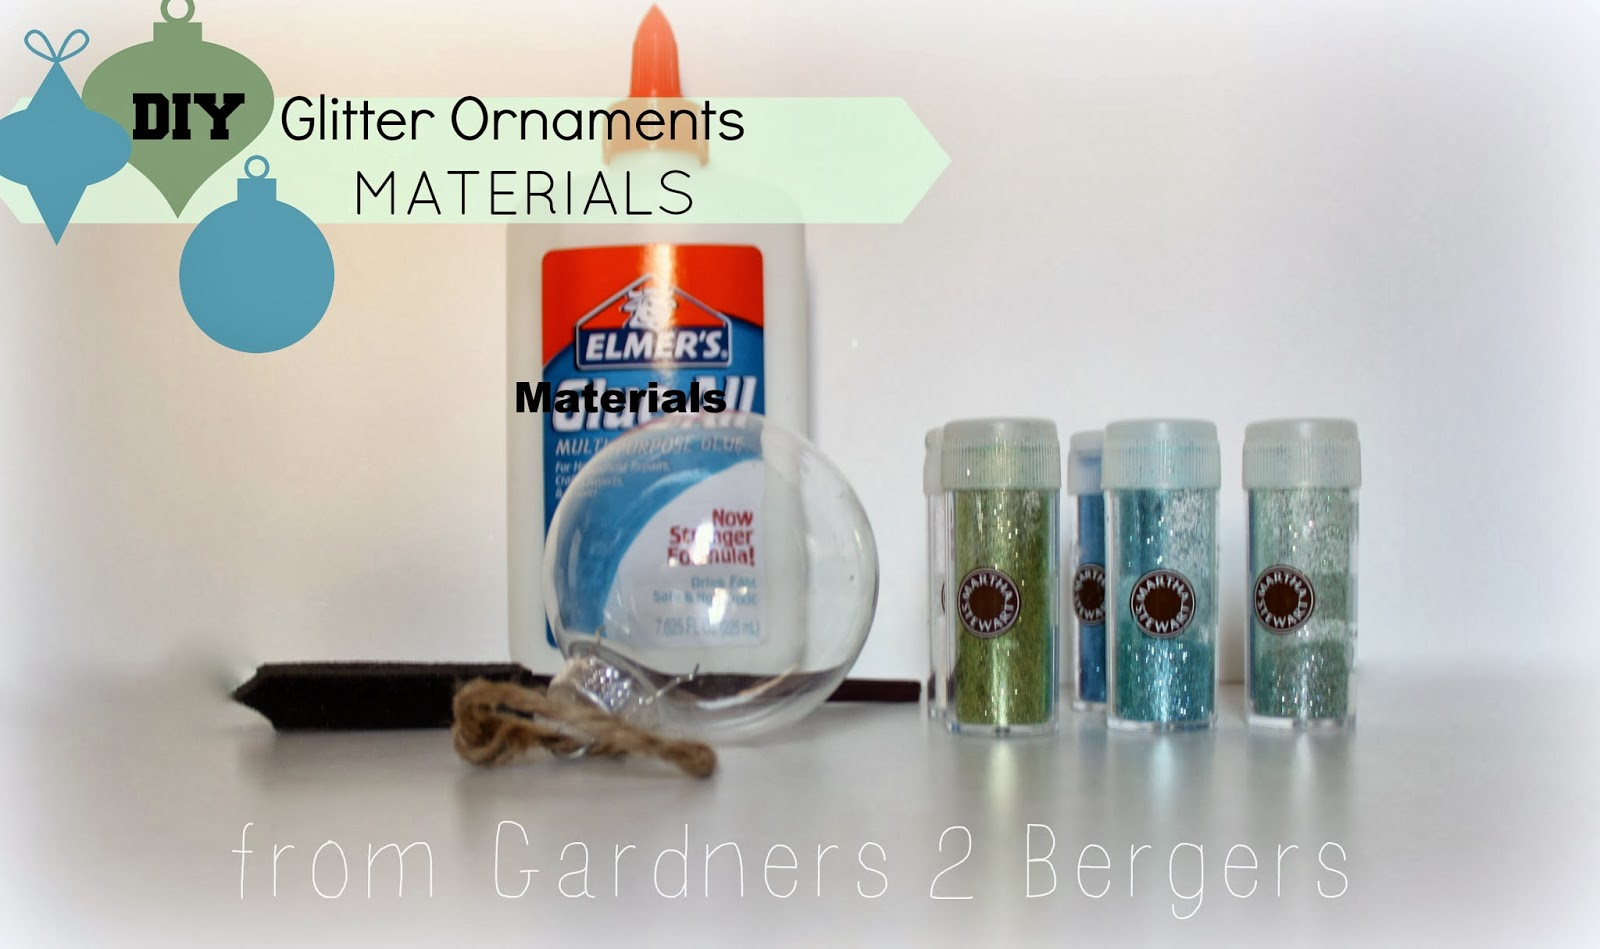 Watch How to Make Glitter Ornaments video